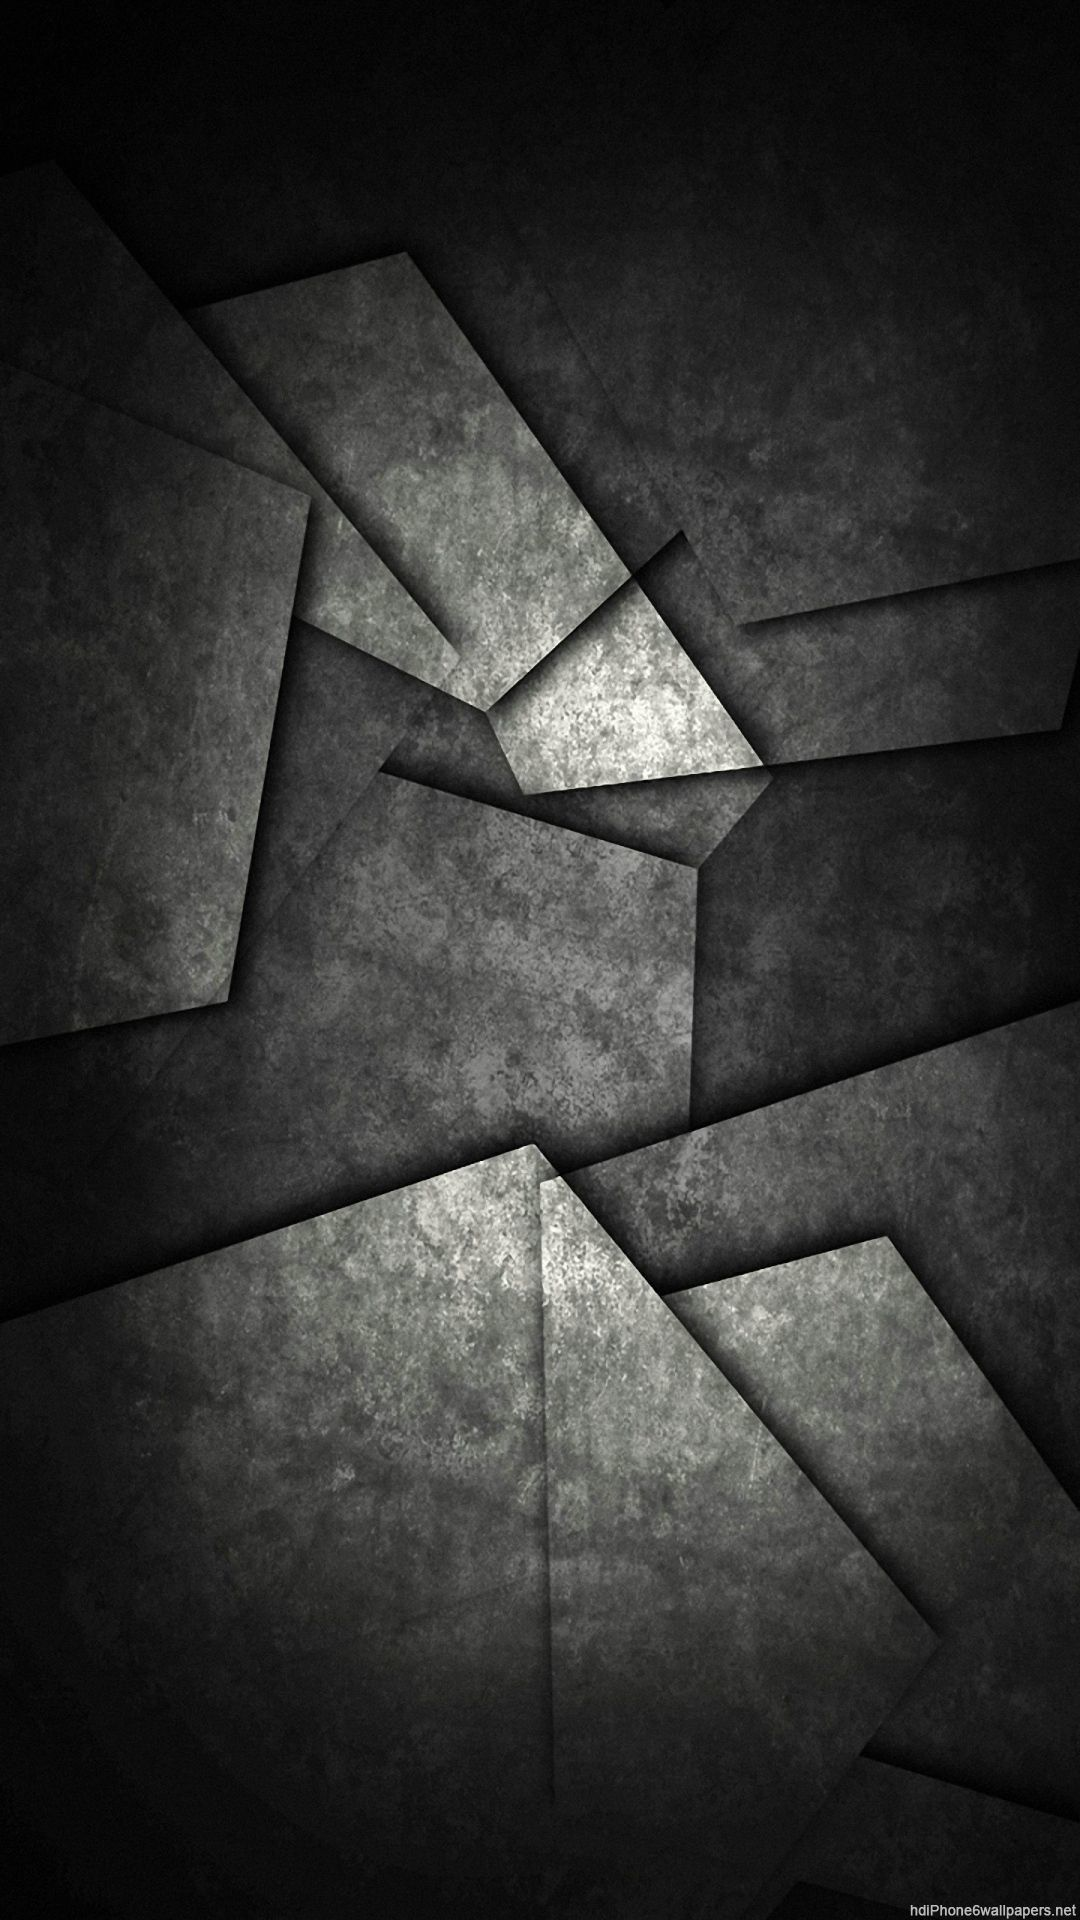 Black And White Phone Wallpaper In 2020 Royal Wallpaper Cute Black Wallpaper Black Wallpaper Iphone